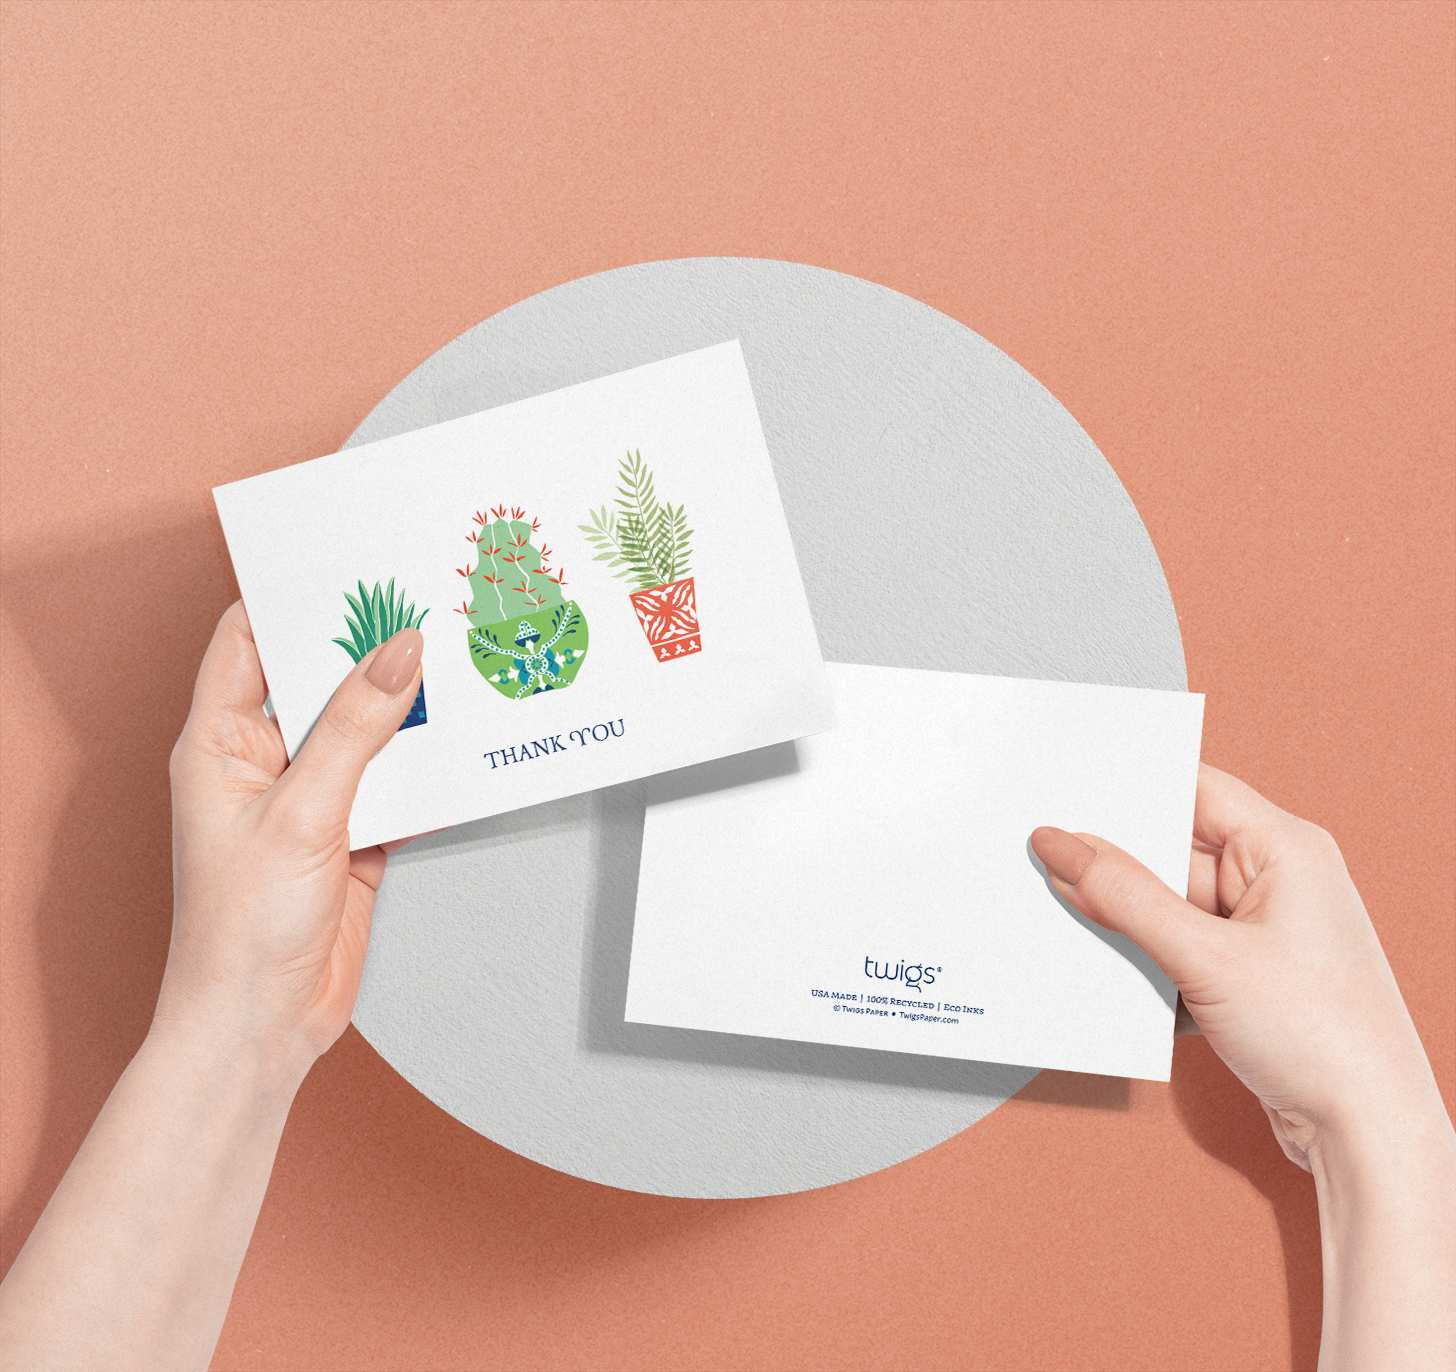 Hands holding card with three colorful cactus plant designs